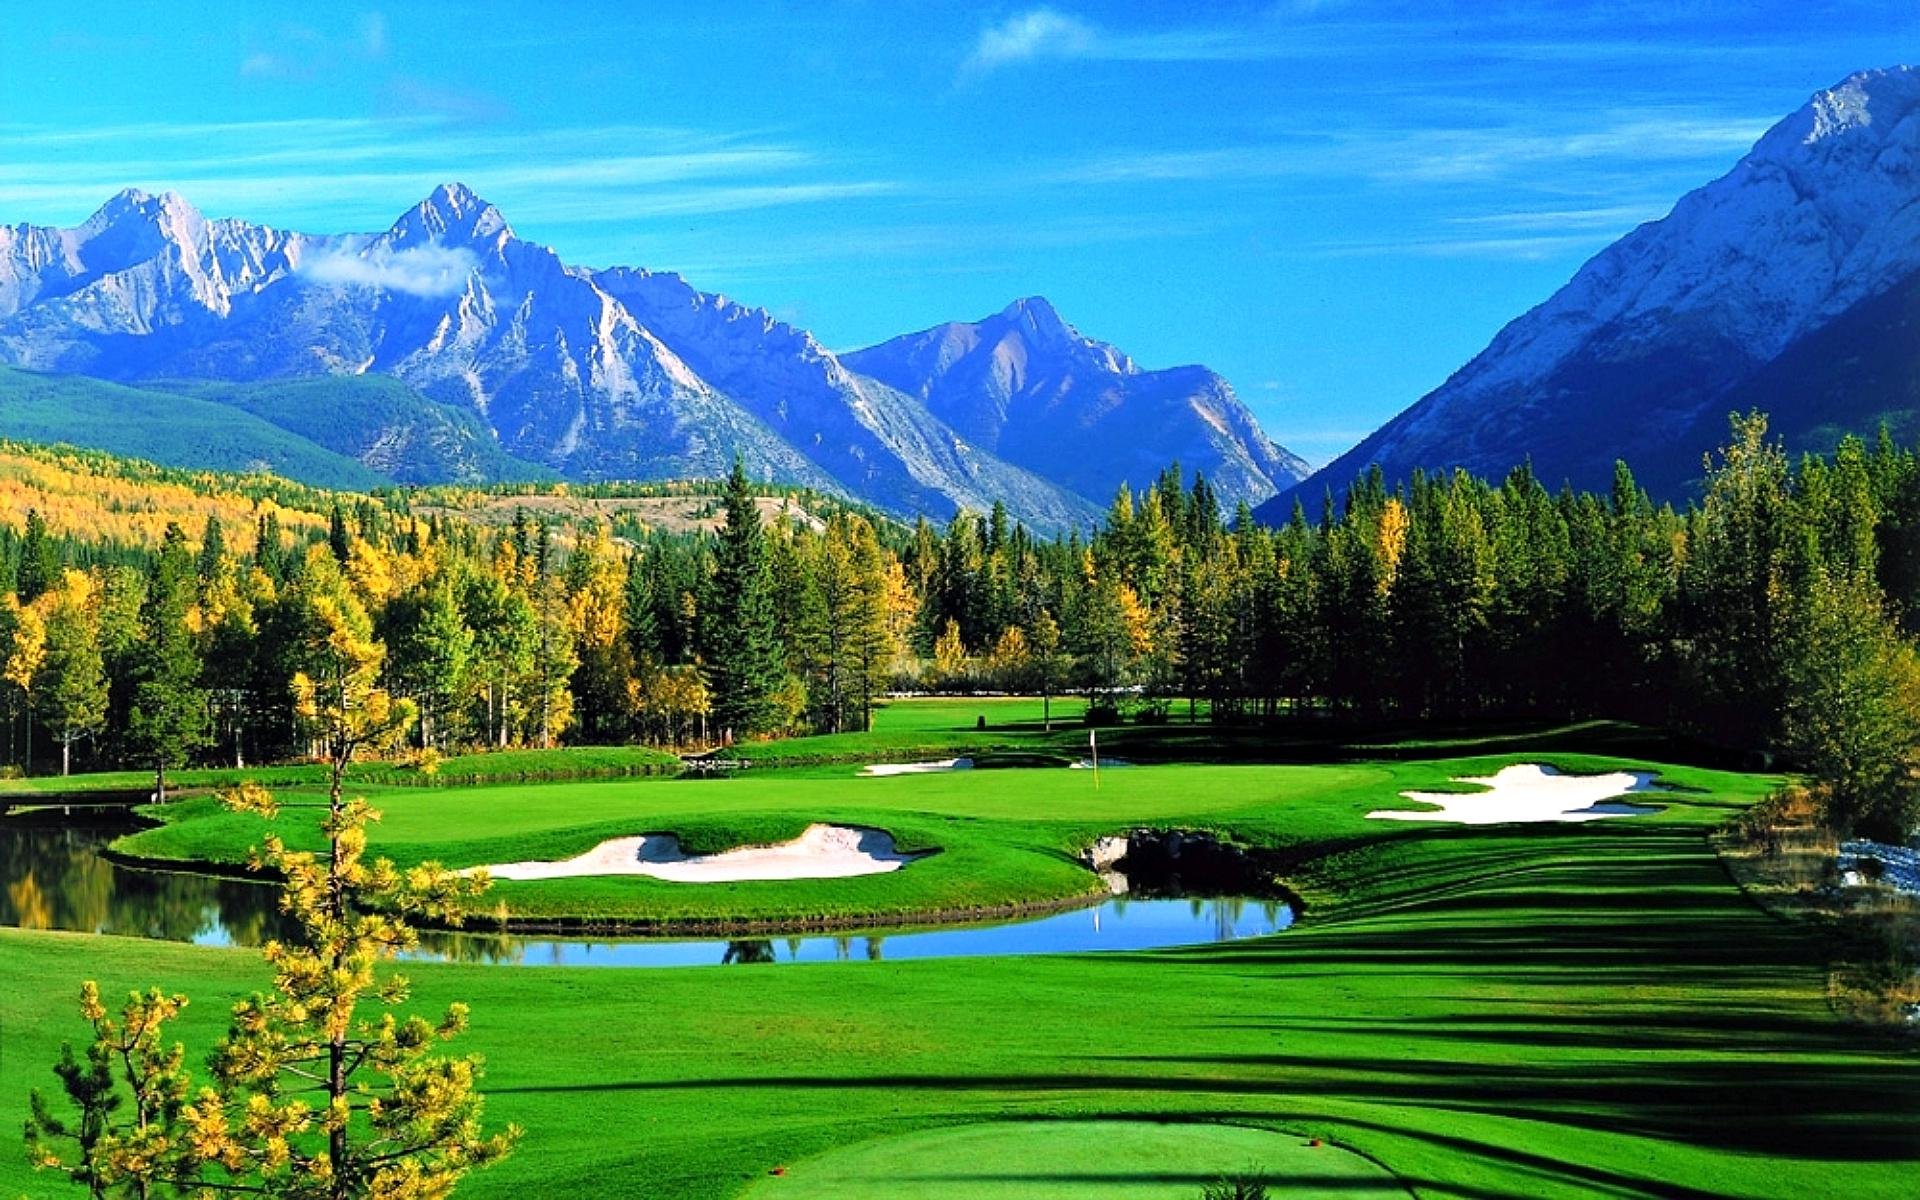 picture of golf course with moutains backdrop